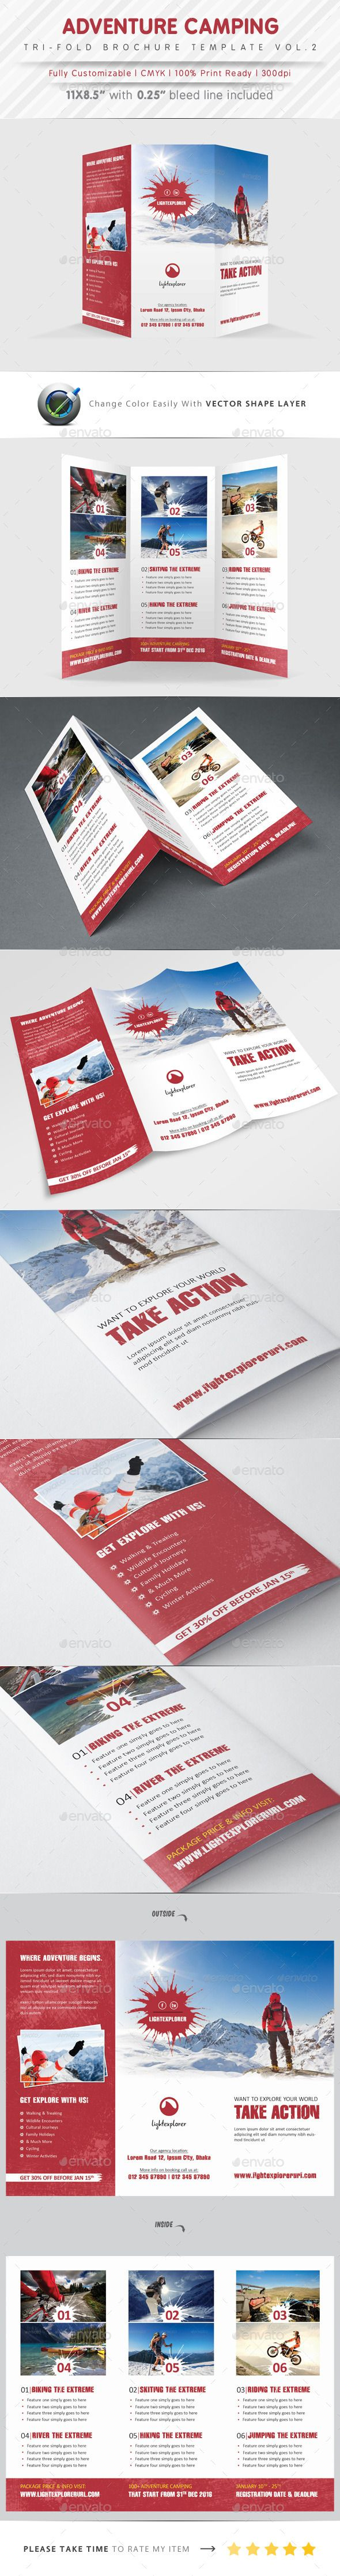 Stunning Adventure Camping Tri Fold PSD Template • Only available here ➝ http://graphicriver.net/item/adventure-camping-tri-fold-vol2/9916540?ref=pxcr